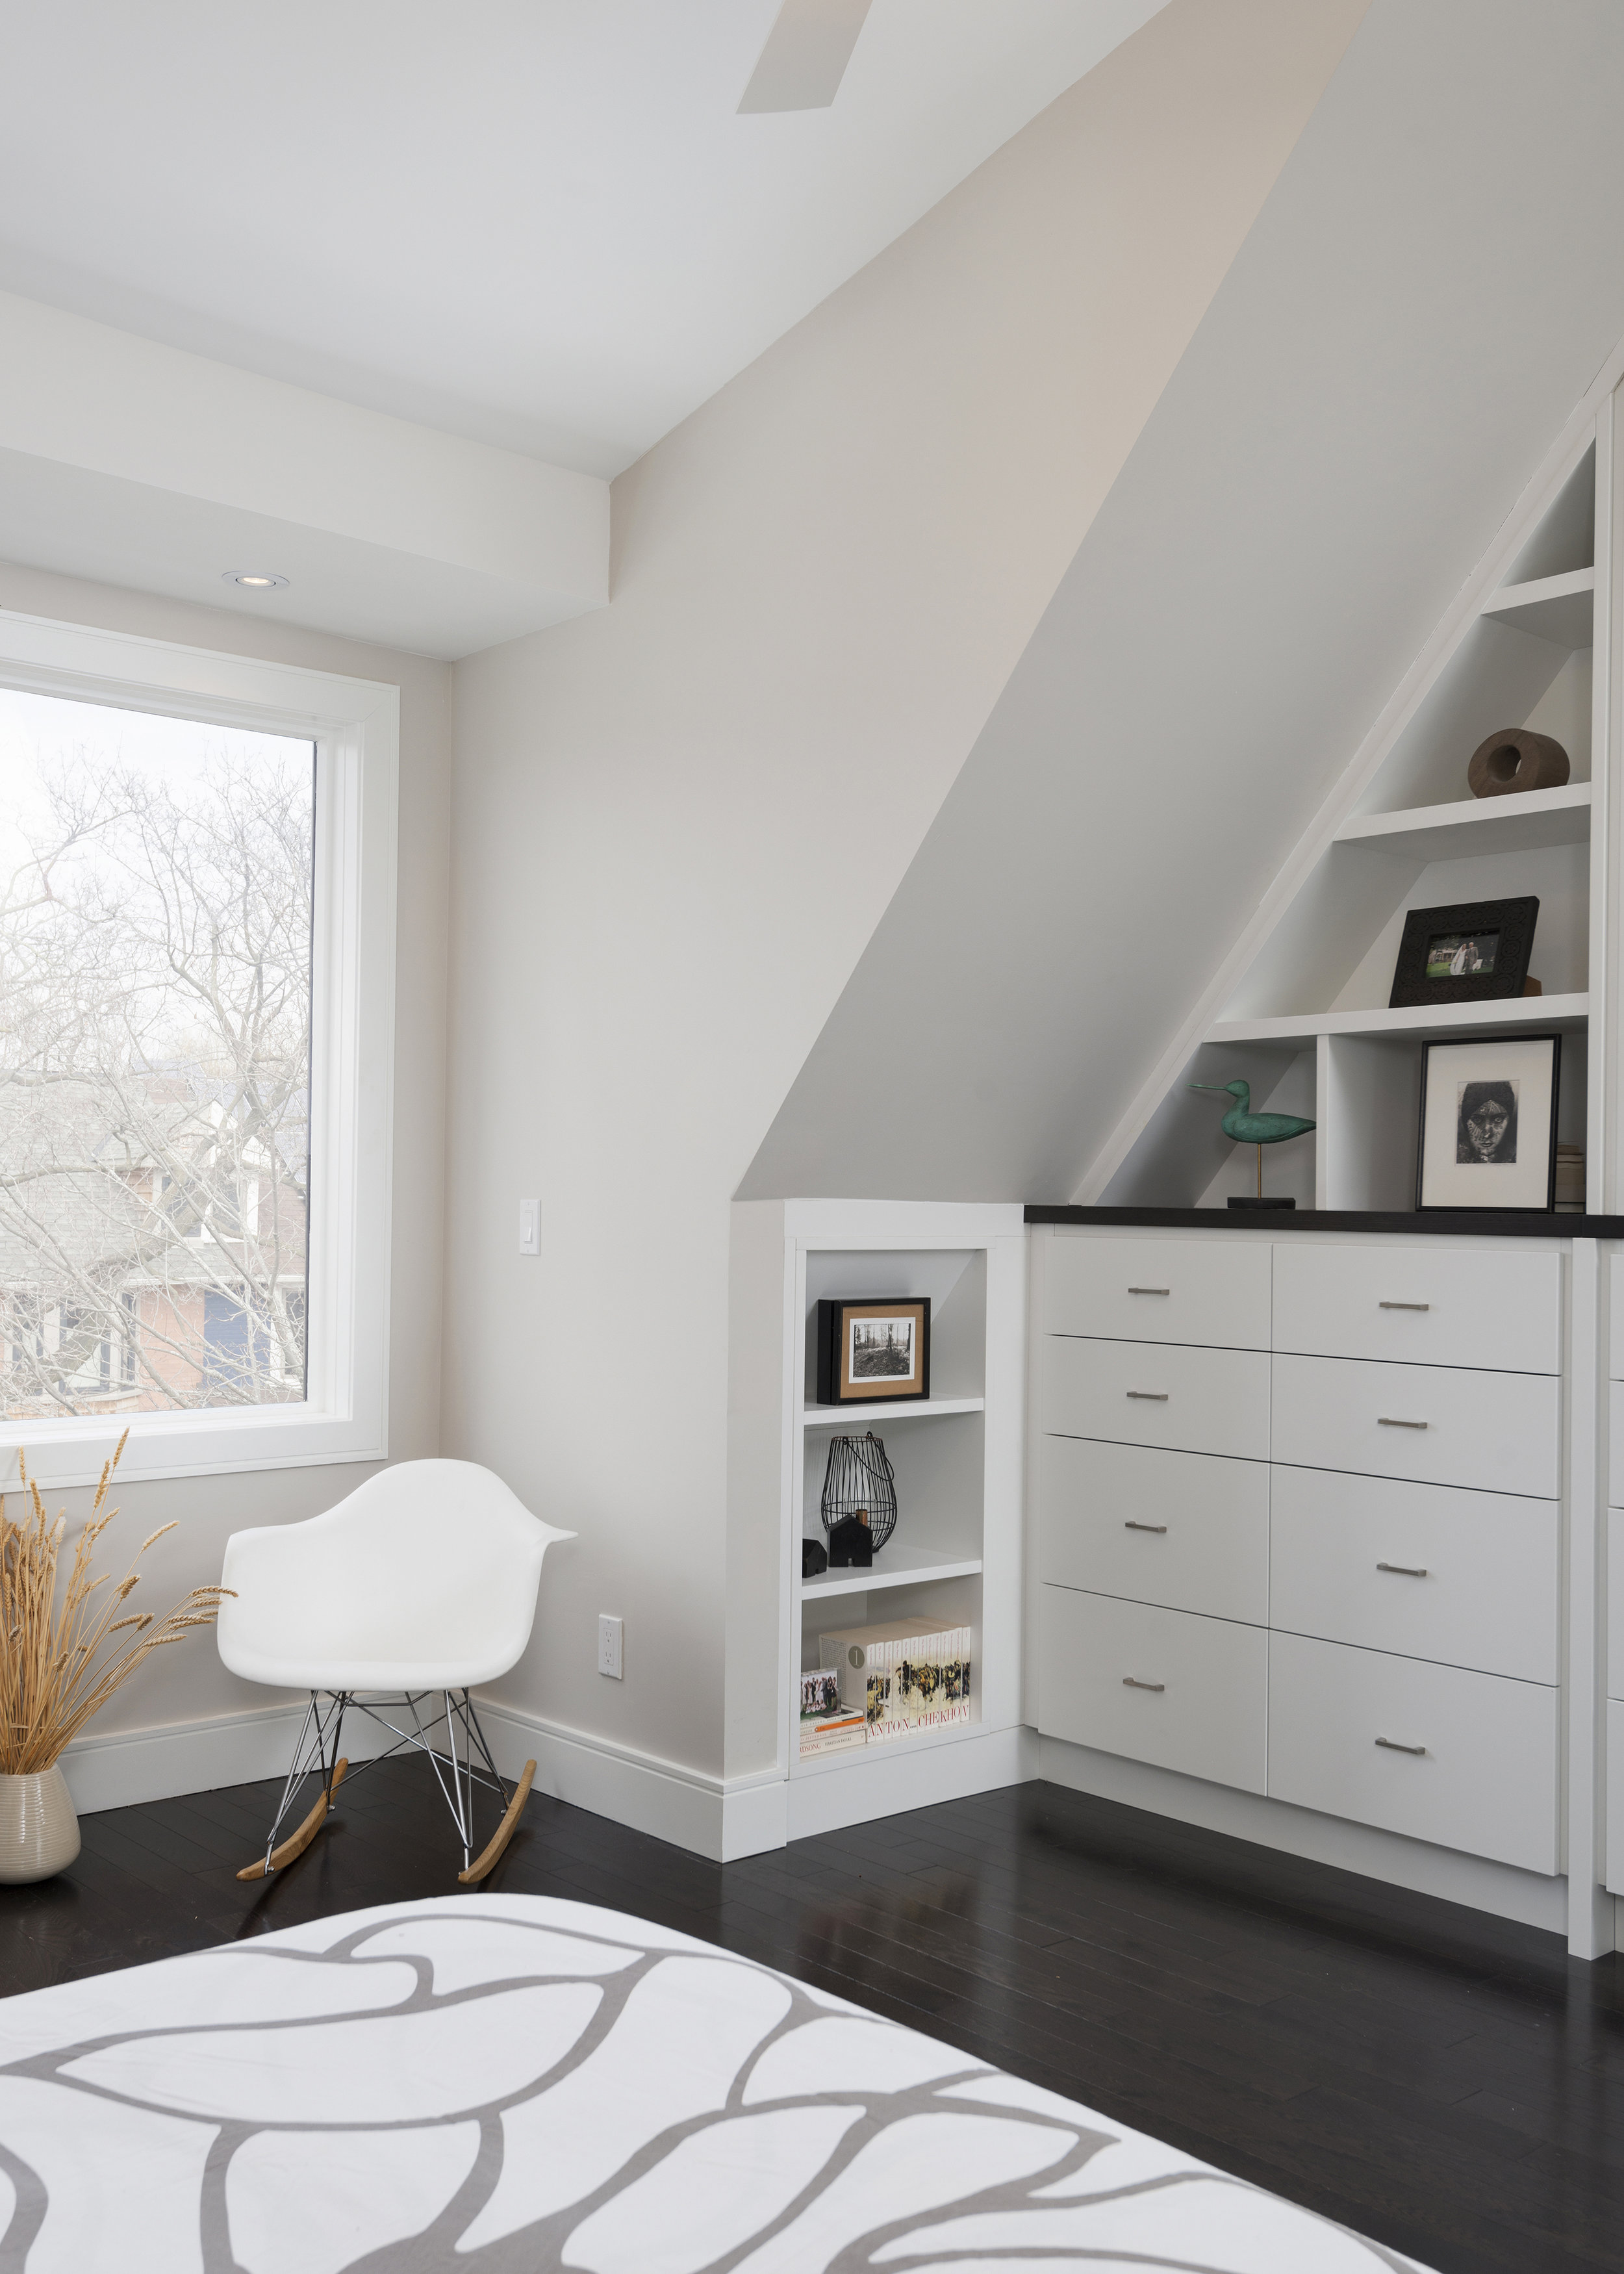 Custom Shelving Throughout space